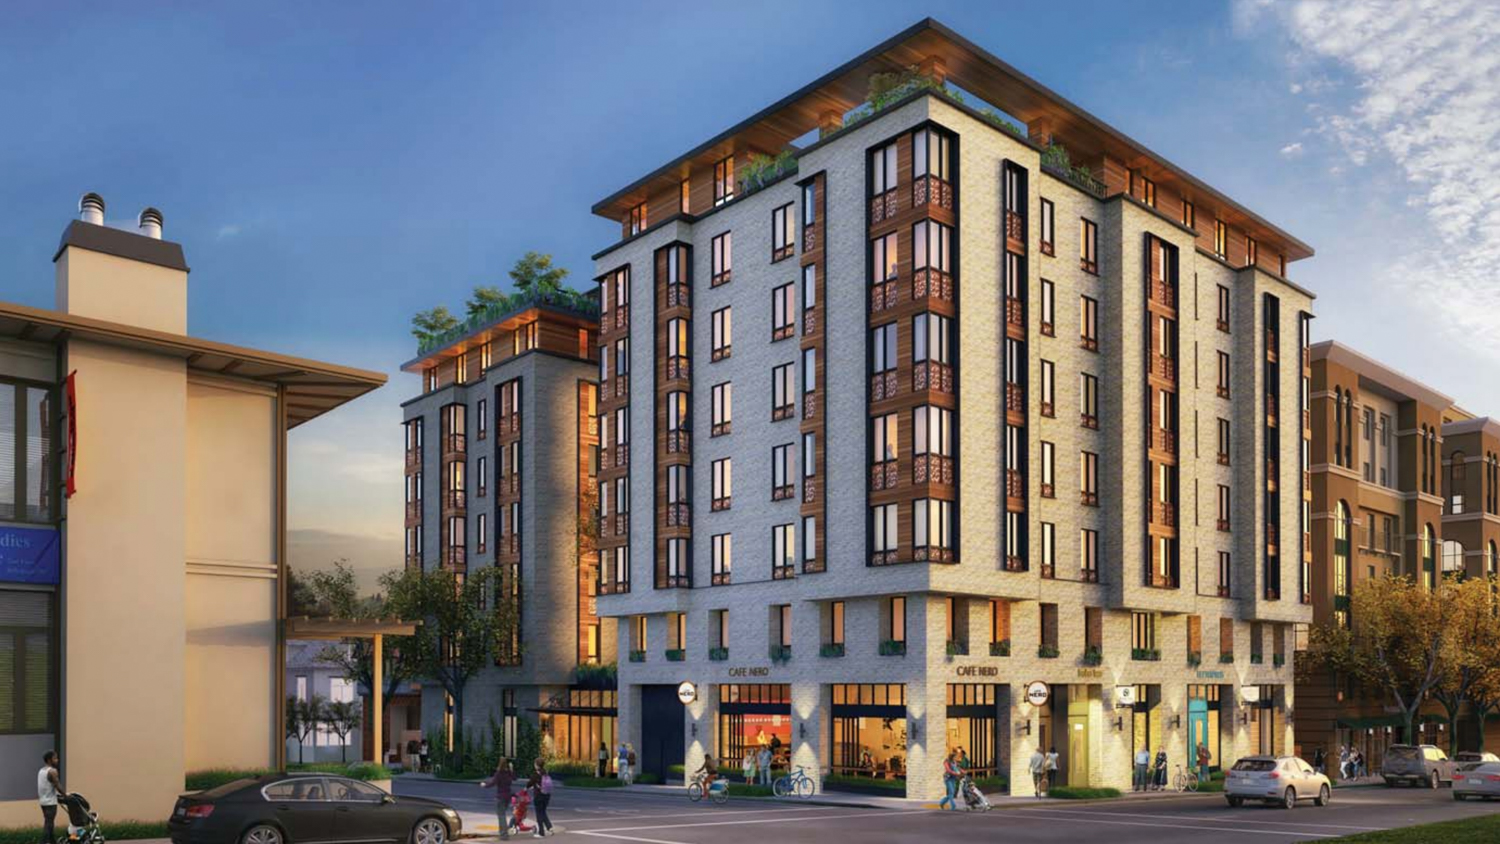 2590 Bancroft Way, rendering by Trachtenberg Architects